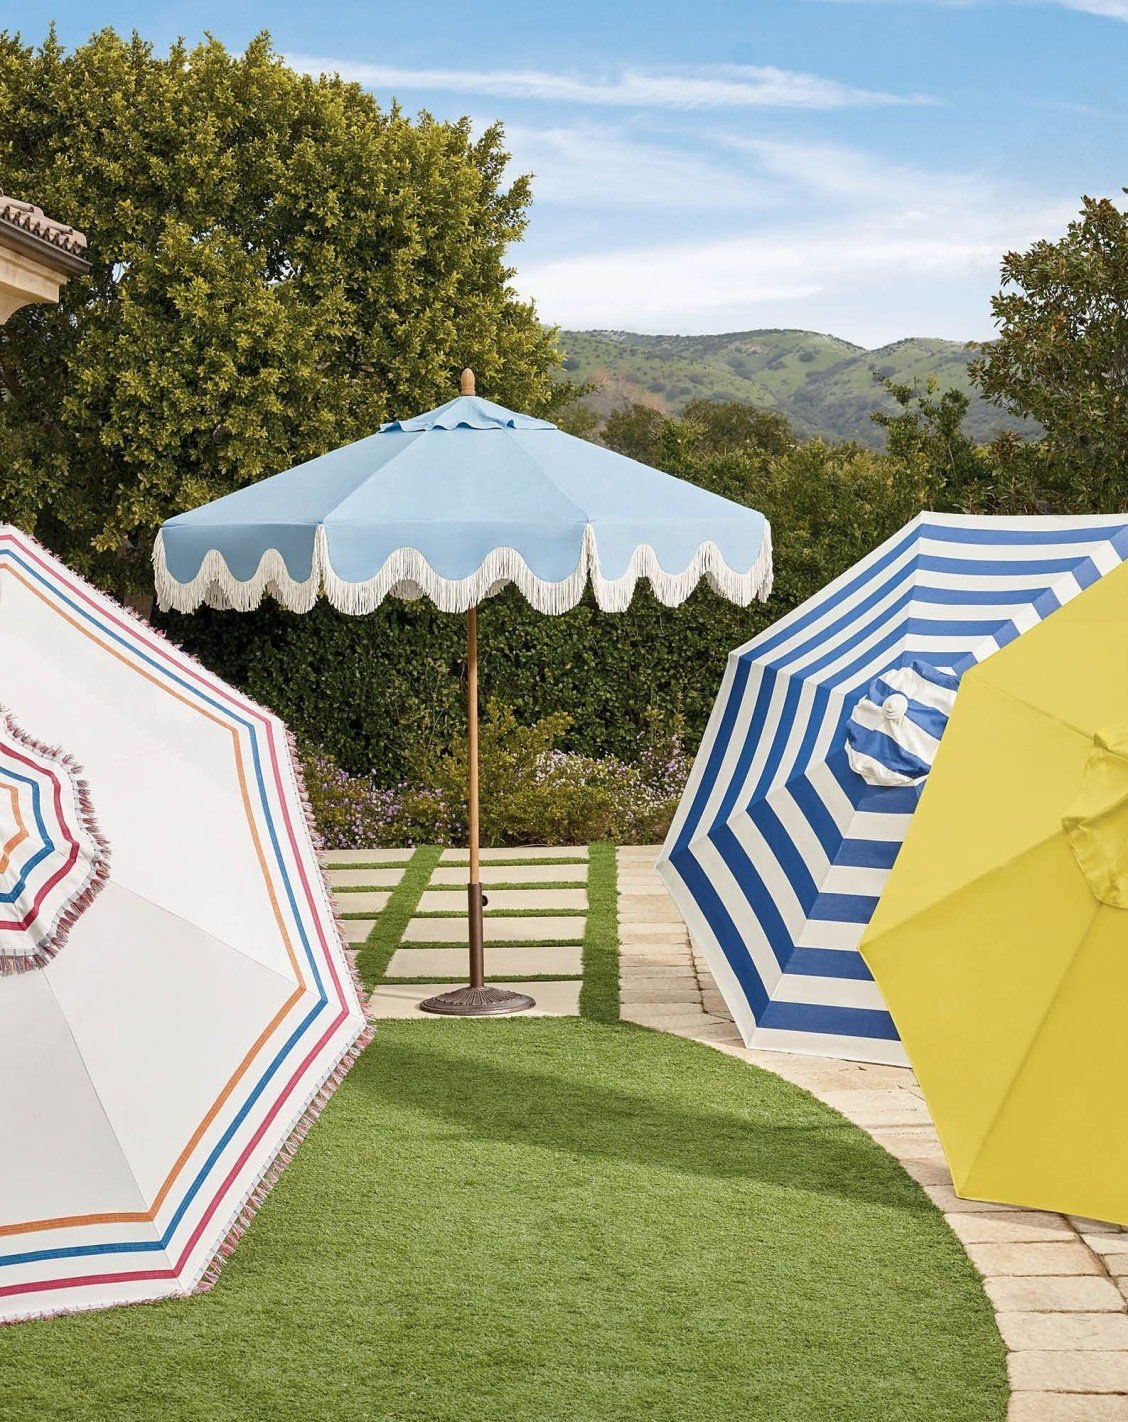 Recent Wiechmann Market Sunbrella Umbrellas With Stripes, Tassels And Patterns – Oh My! How Will You Ever Choose An (View 12 of 20)